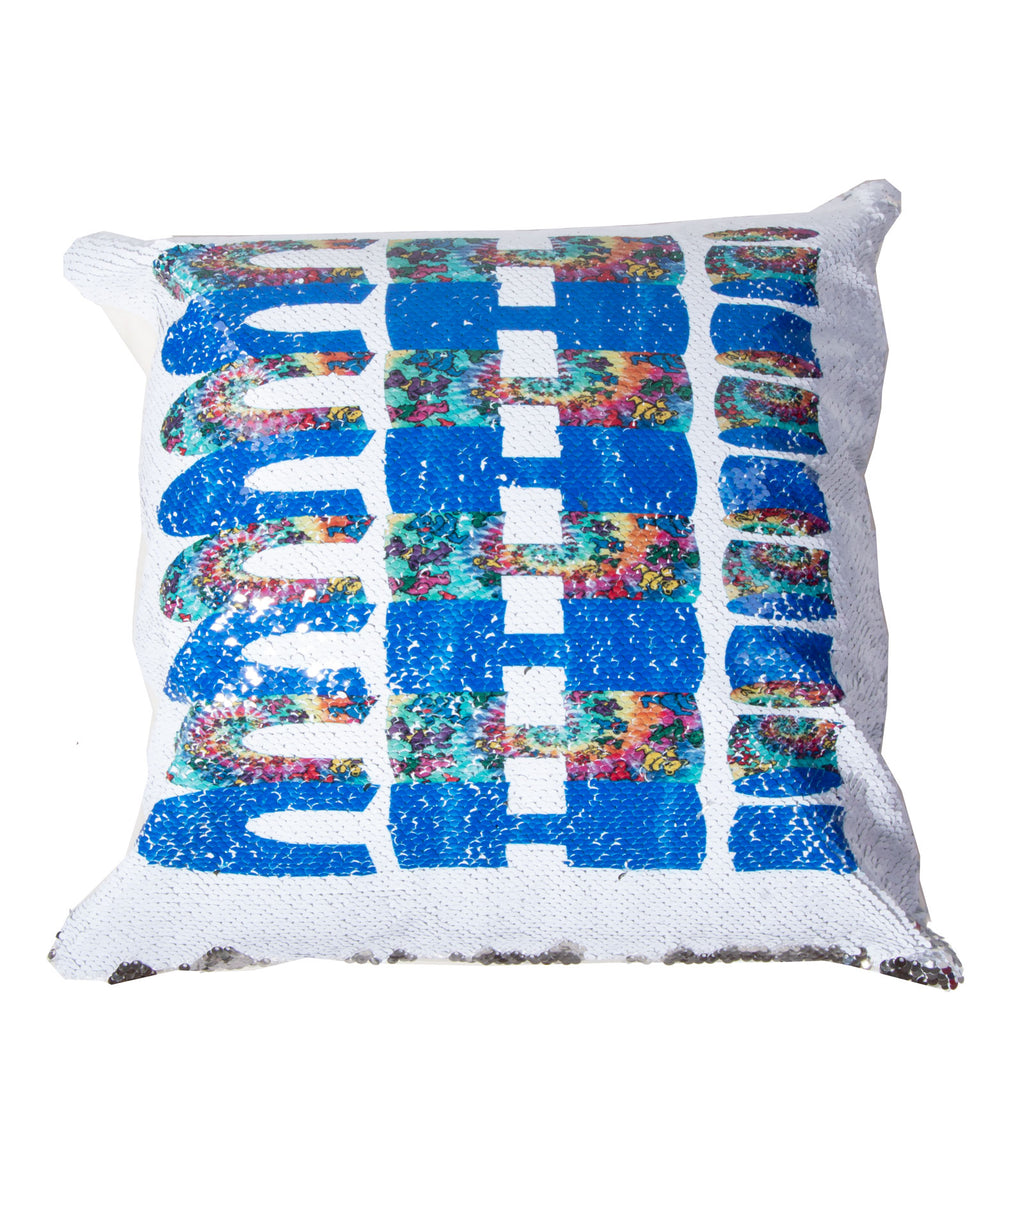 Reverse Sequin Pillow Repeat Pattern